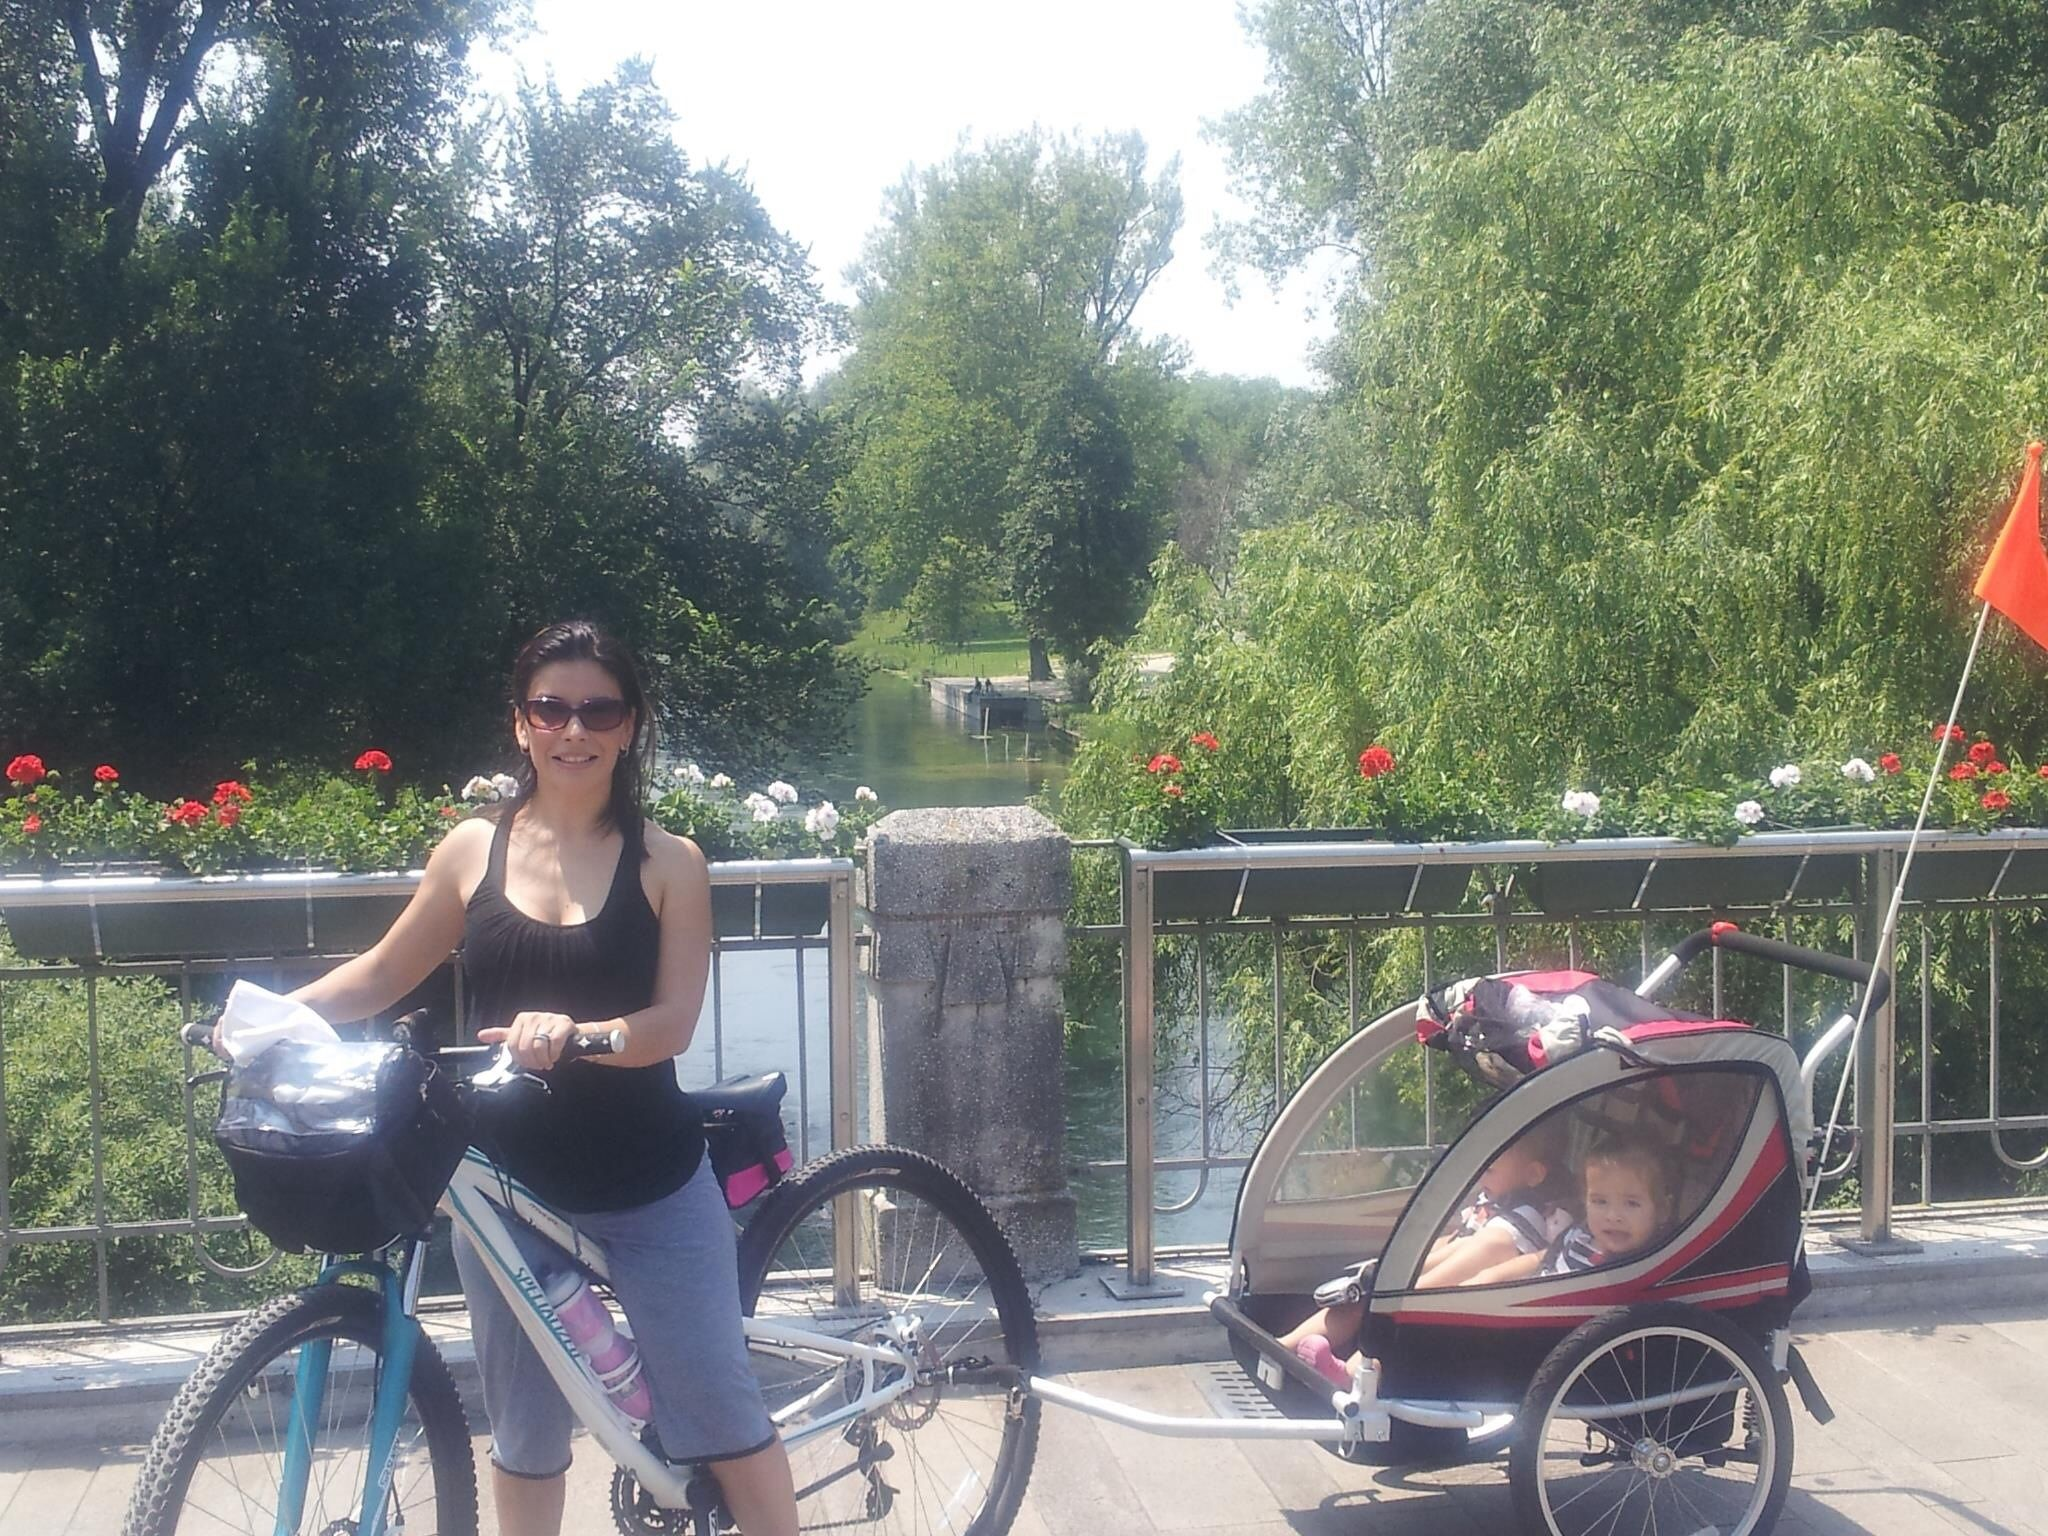 Pulling my twins with my mountain bike through Pordenone Italy. What better way to stay in somewhat shape than to lug 40 plus lbs of babies :-) #twins # Zulma #Italy